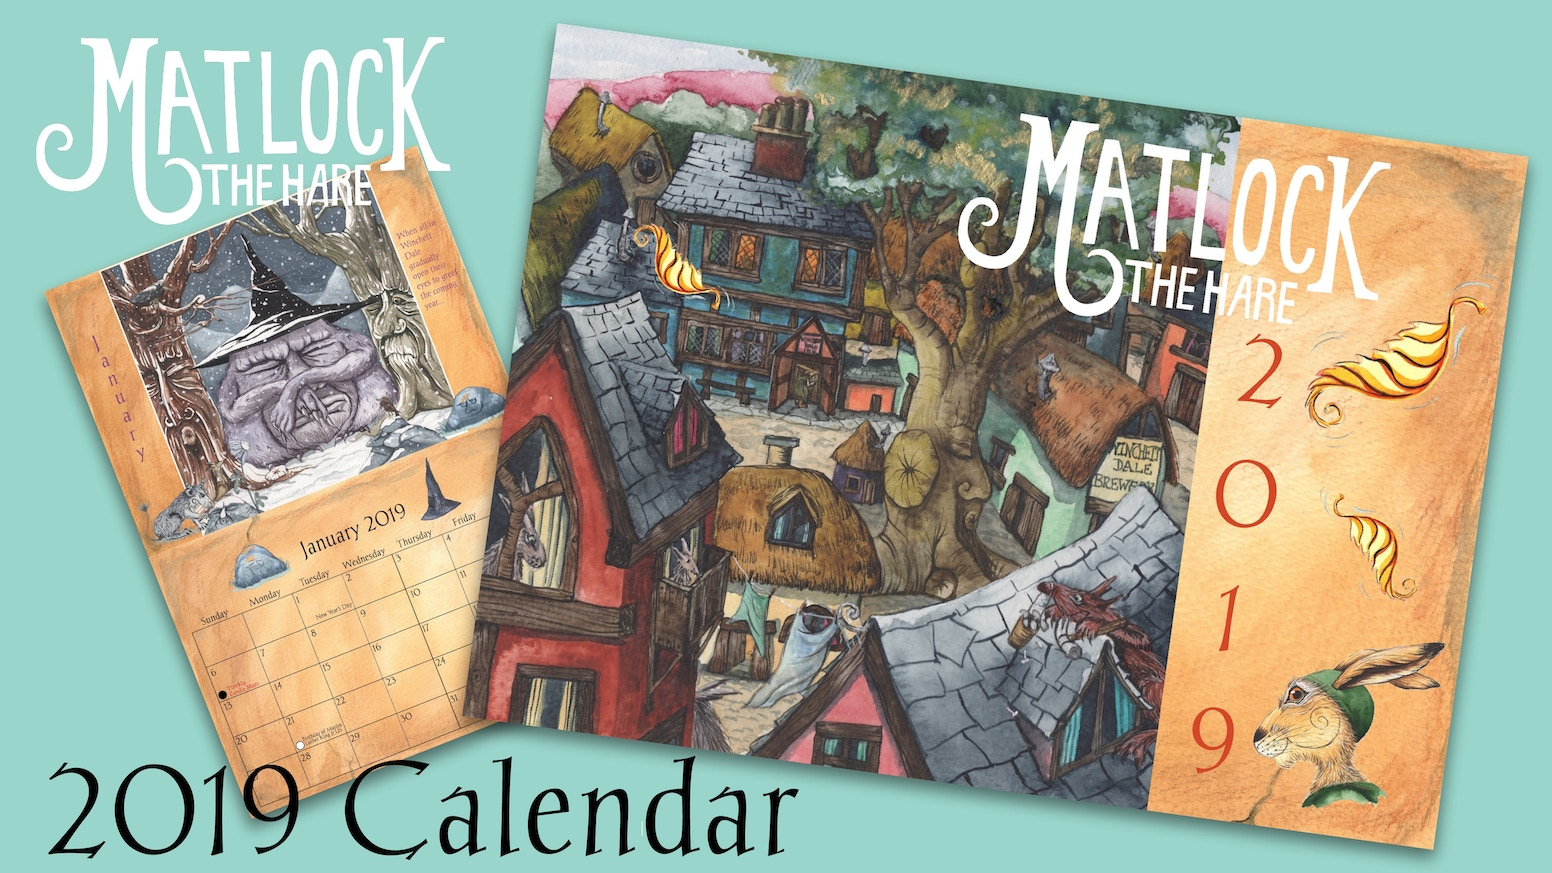 matlock the hare 2019 calendar by phil and jacqui lovesey kickstarter